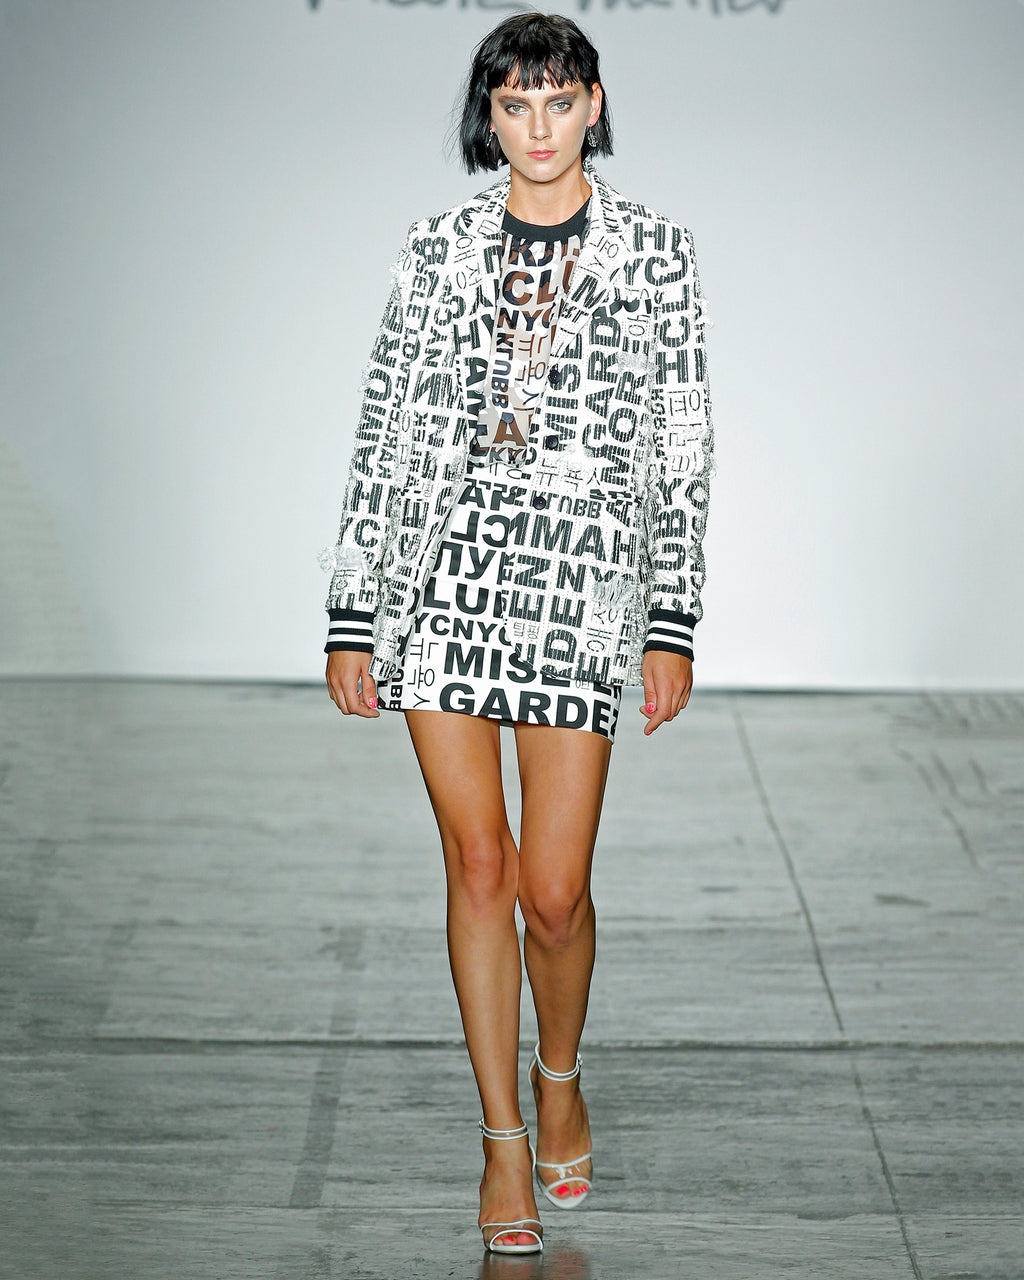 DL10008 - WORDS & LETTERS EMBELLISHMENT BOYFRIEND JACKET - outerwear - jackets - EMBELLISHMENTS, SHREDS, WORDS - IT'S ALL IN THE DETAILS. THIS OVERSIZED STATEMENT JACKET (STRAIGHT FROM THE RUNWAY) WILL TURN HEADS.